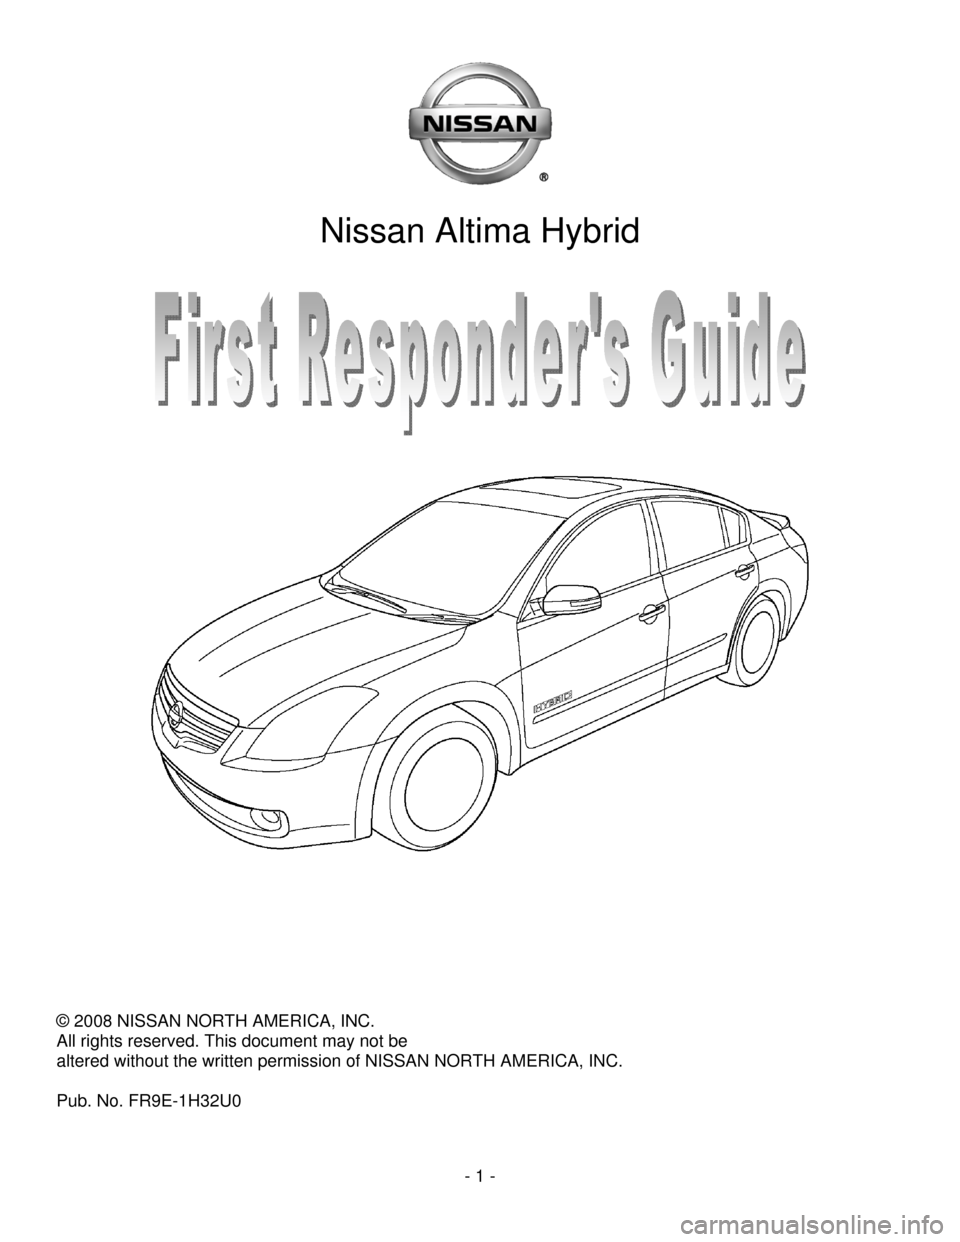 NISSAN ALTIMA HYBRID 2009 L32A / 4.G First Responders Guide - 1 -      Nissan Altima Hybrid                    © 2008 NISSAN NORTH AMERICA, INC.  All rights reserved. This document may not be   altered without the written permission of NISSAN NORTH AMERICA, I